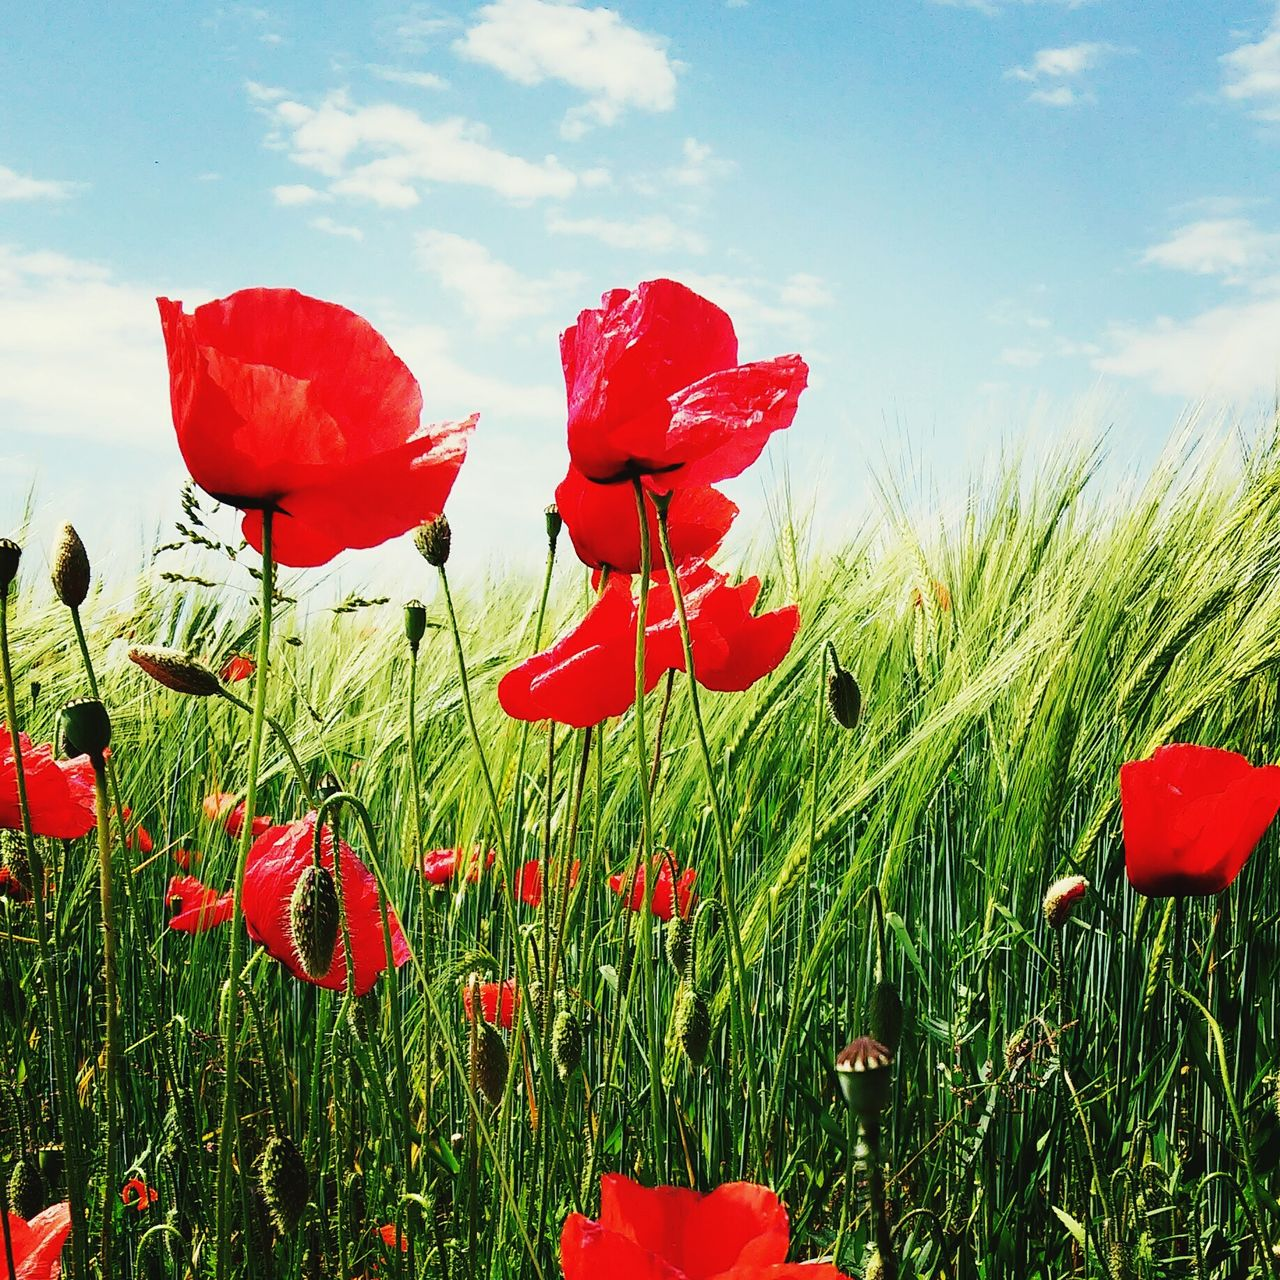 Close-Up Of Red Poppy Flower Growing On Grassy Field